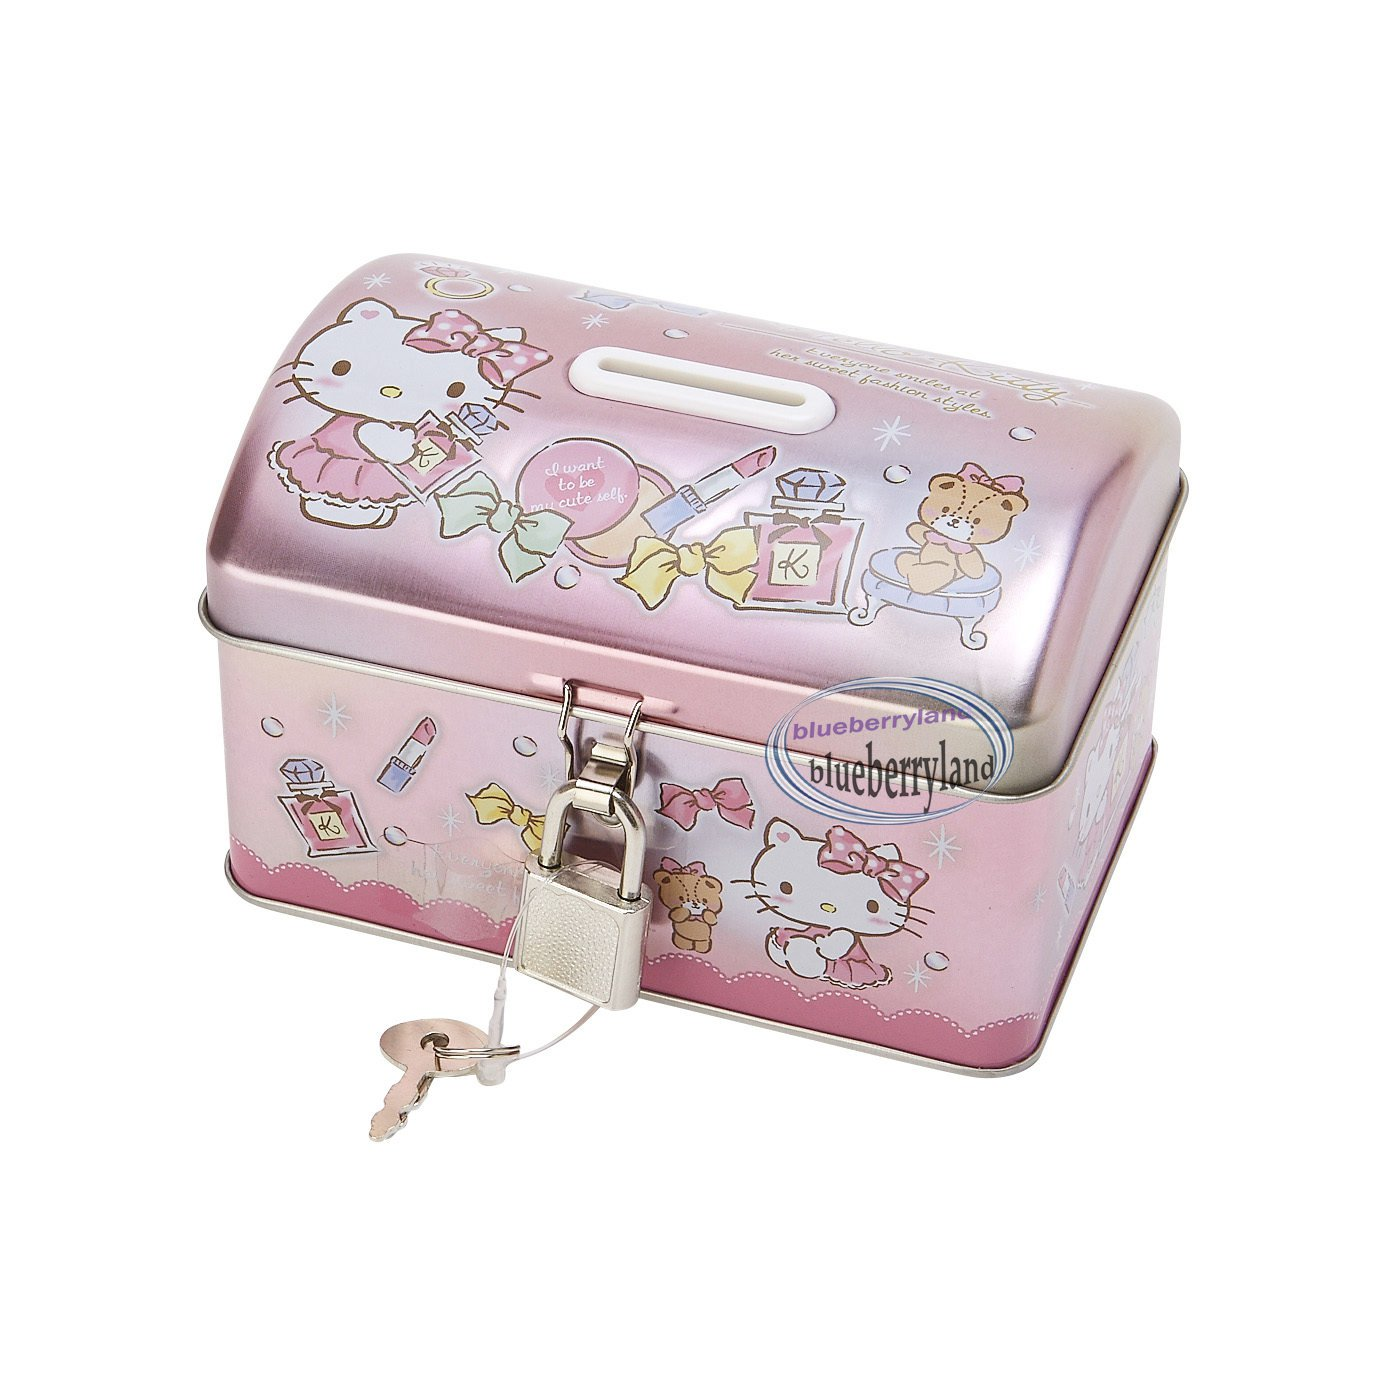 Sanrio Hello Kitty Piggy Bank Metal Cash Box with Lock & Key gift girls ladies